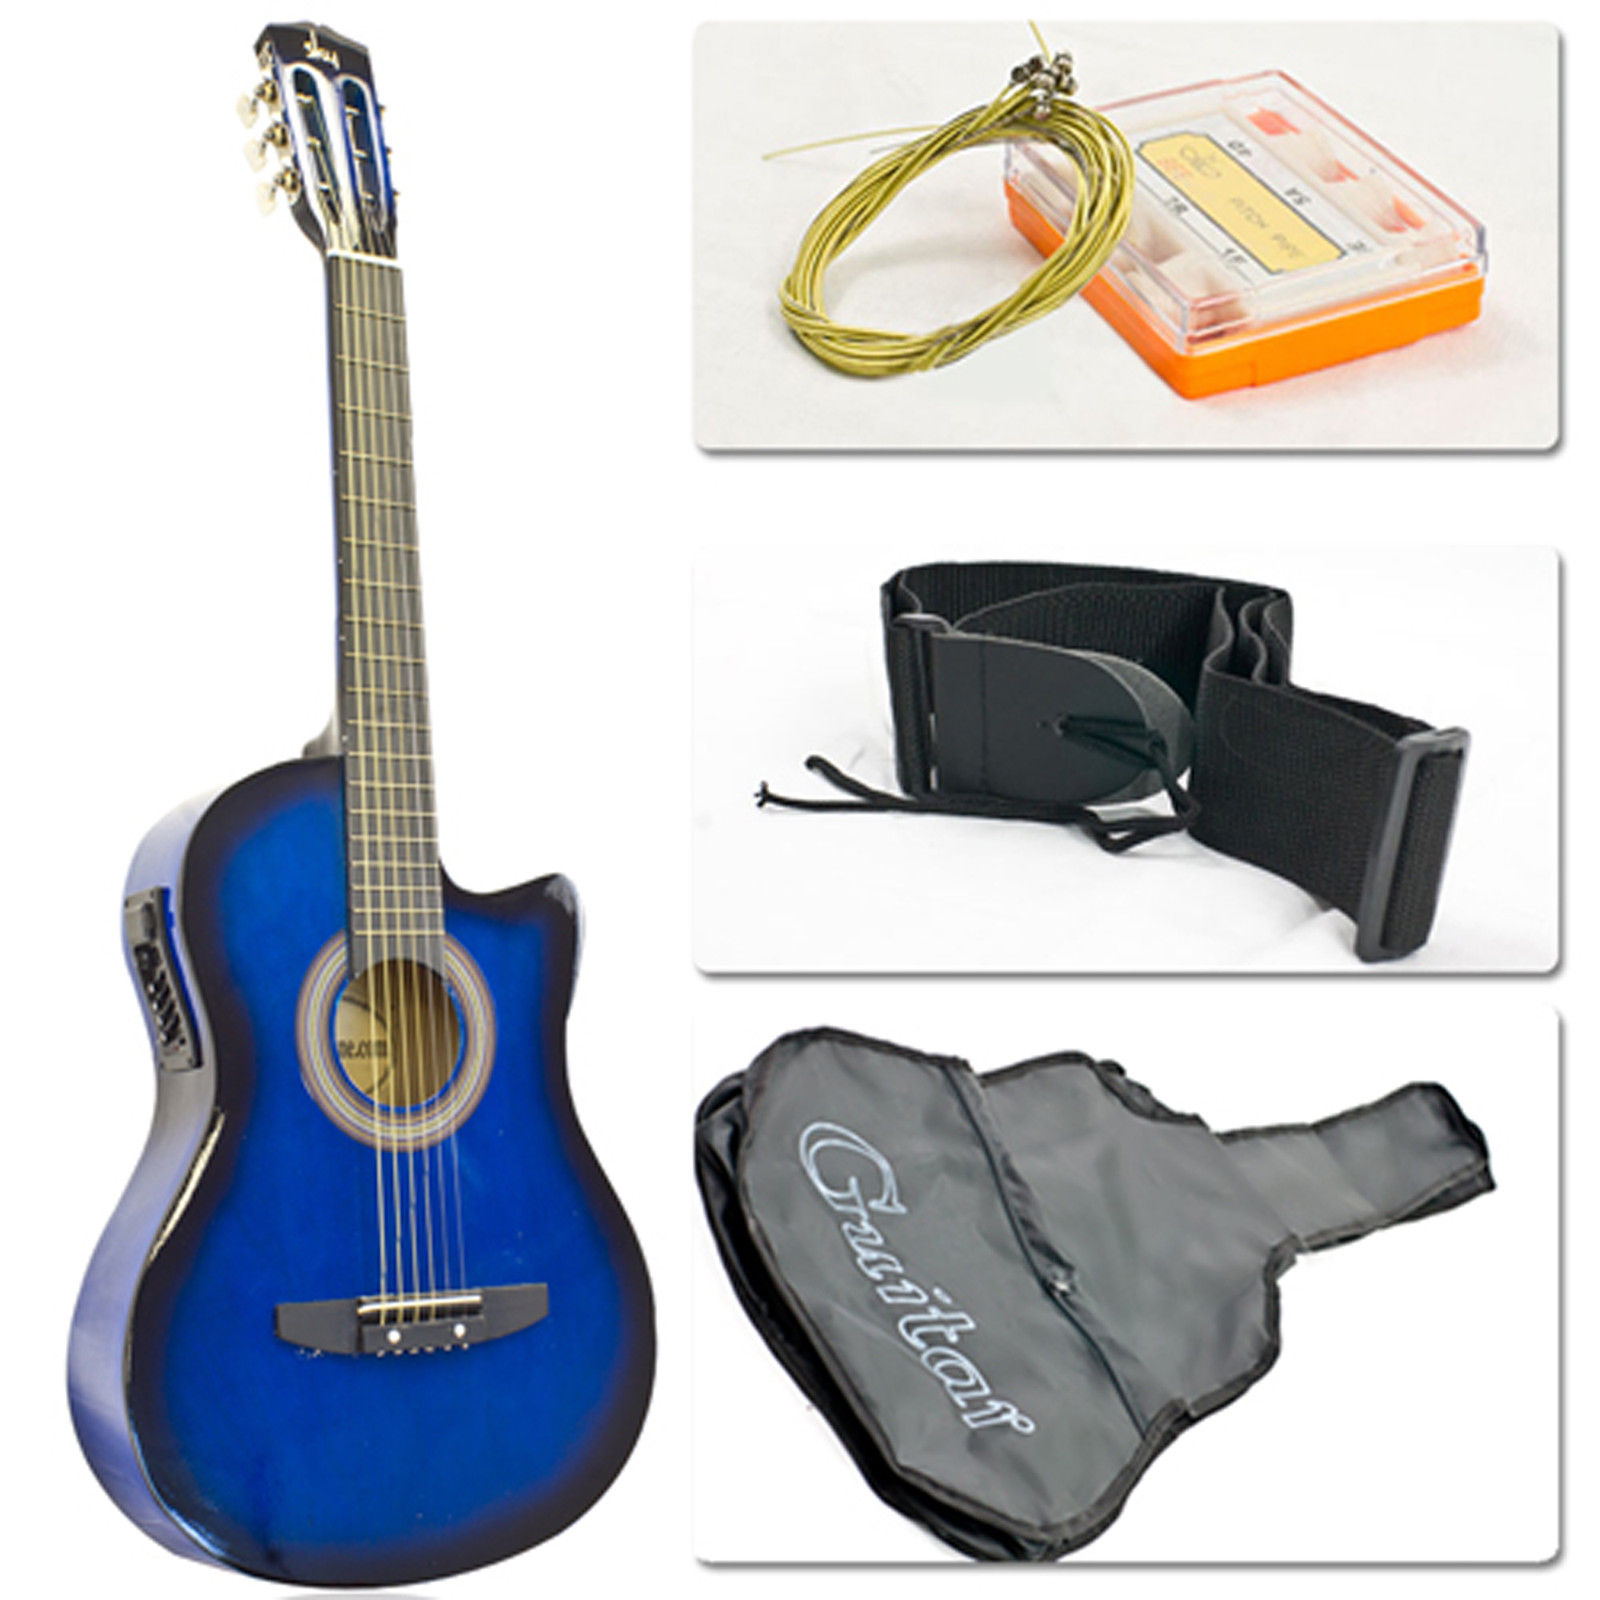 Electric Acoustic Guitar Cutaway Design With Guitar Case, Strap, Tuner Blue ALL Included - on sale in Trinidad